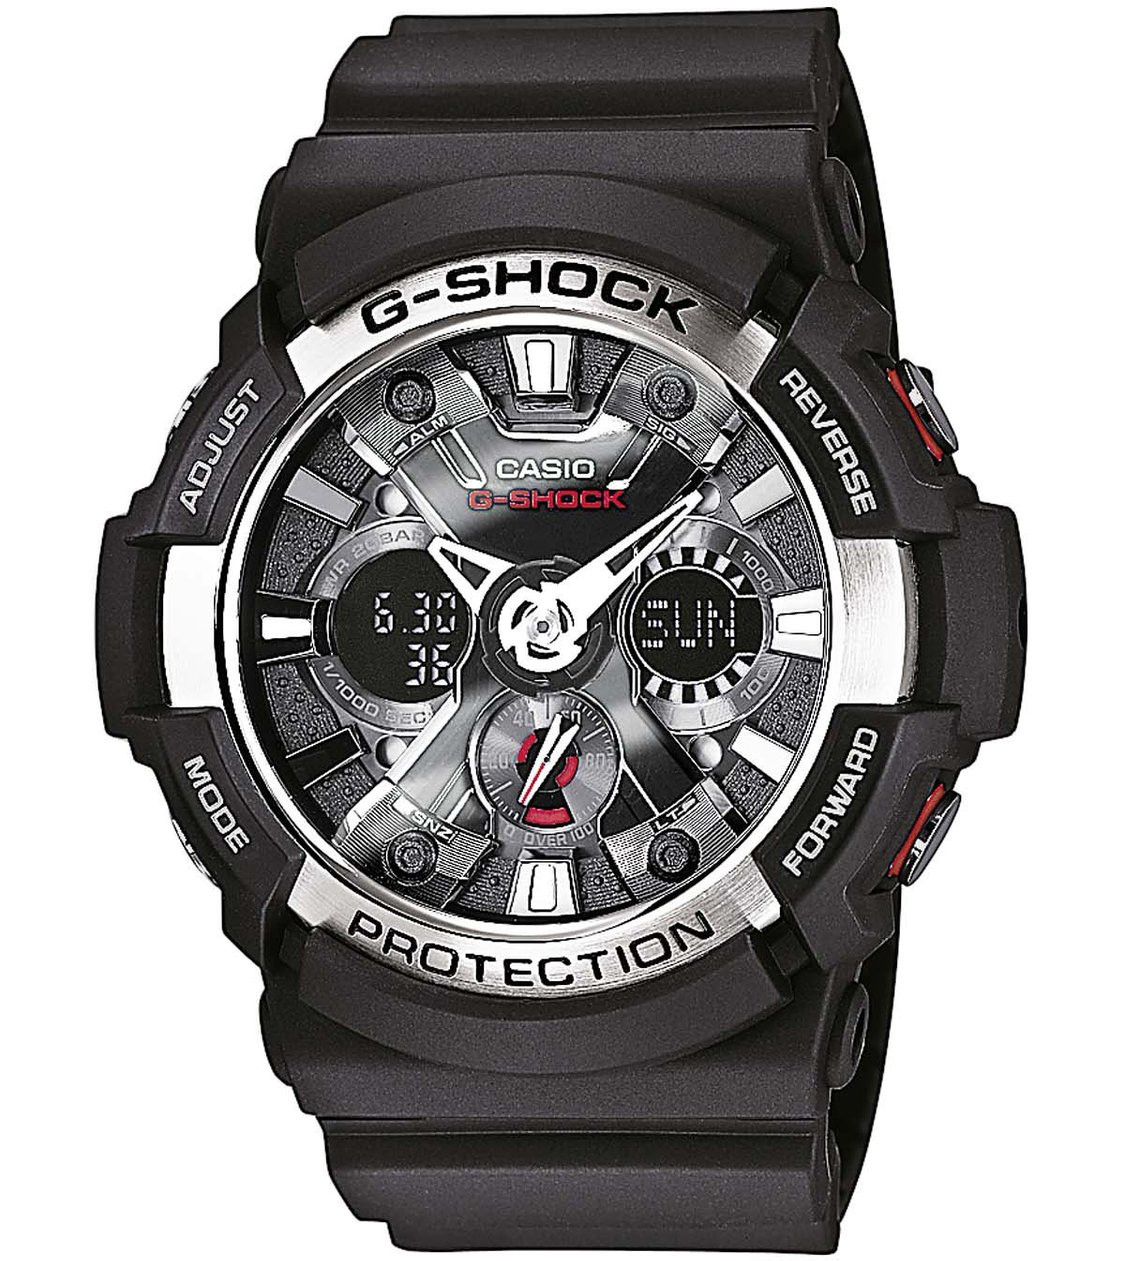 Product Review - Casio G-Shock Men's Chronograph Watch GA-200-1AER